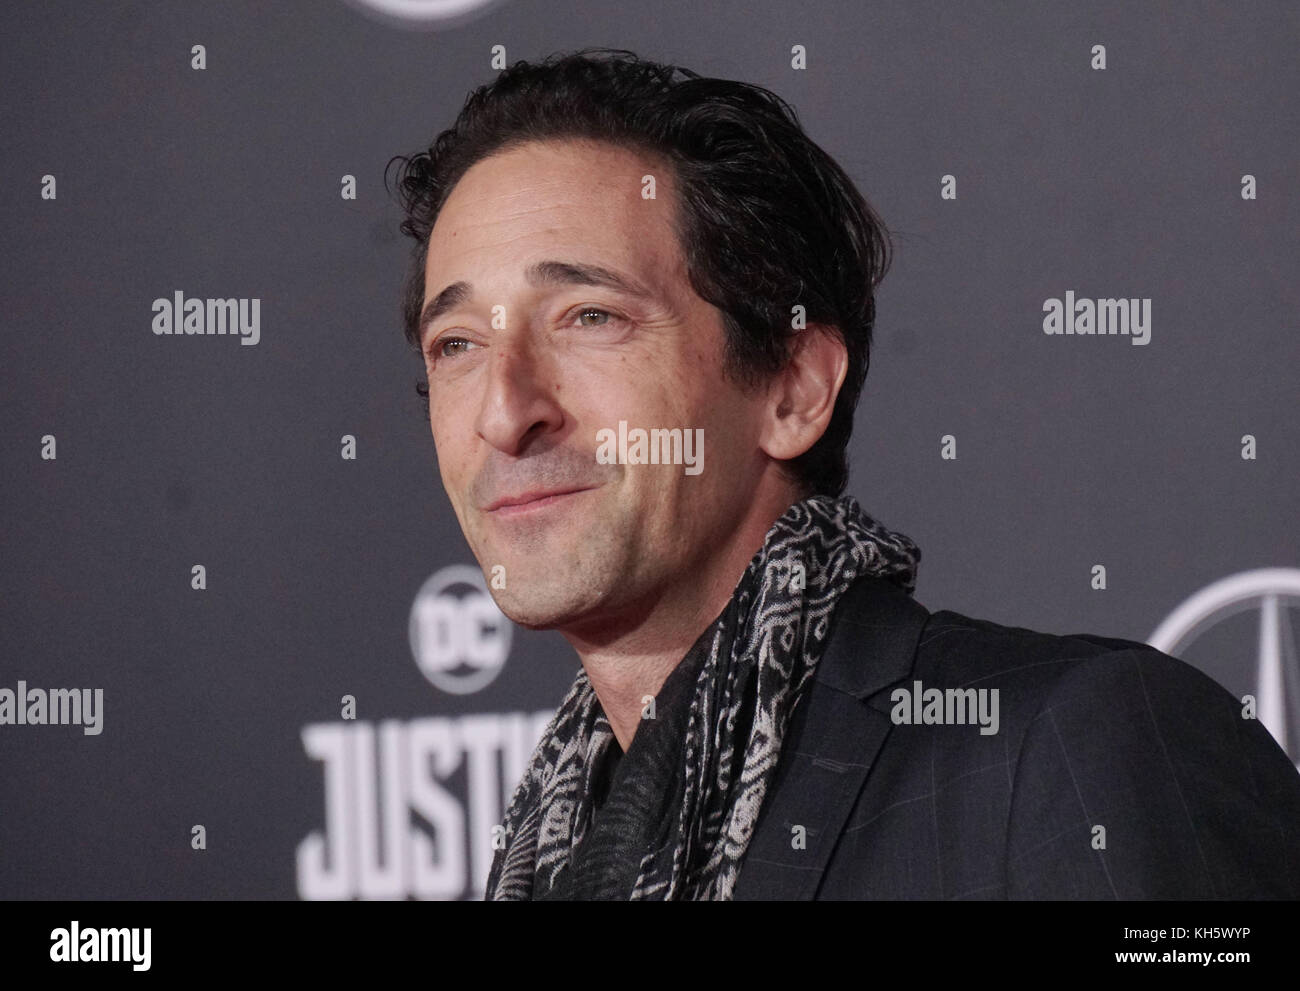 Los Angeles, USA. 13th Nov, 2017. Adrien Brody 022 attend the premiere of Warner Bros. Pictures' 'Justice - Stock Image